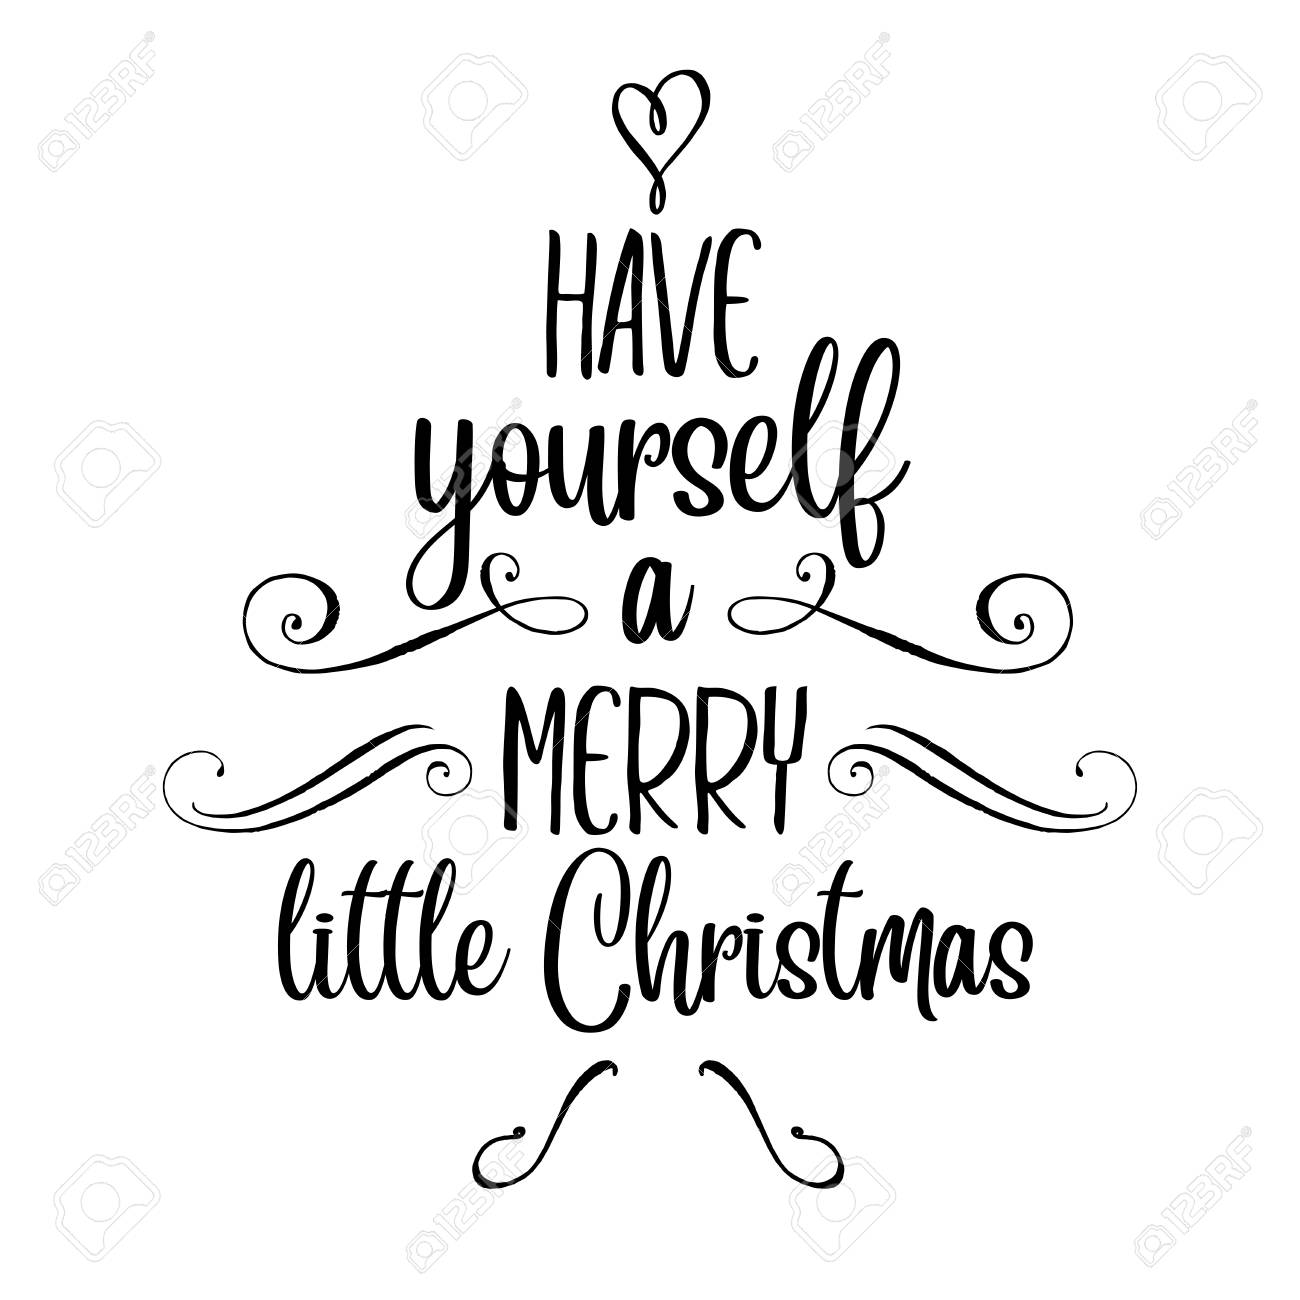 Christmas Cards To Print.Have Yourself A Merry Little Christmas Christmas Quote Black